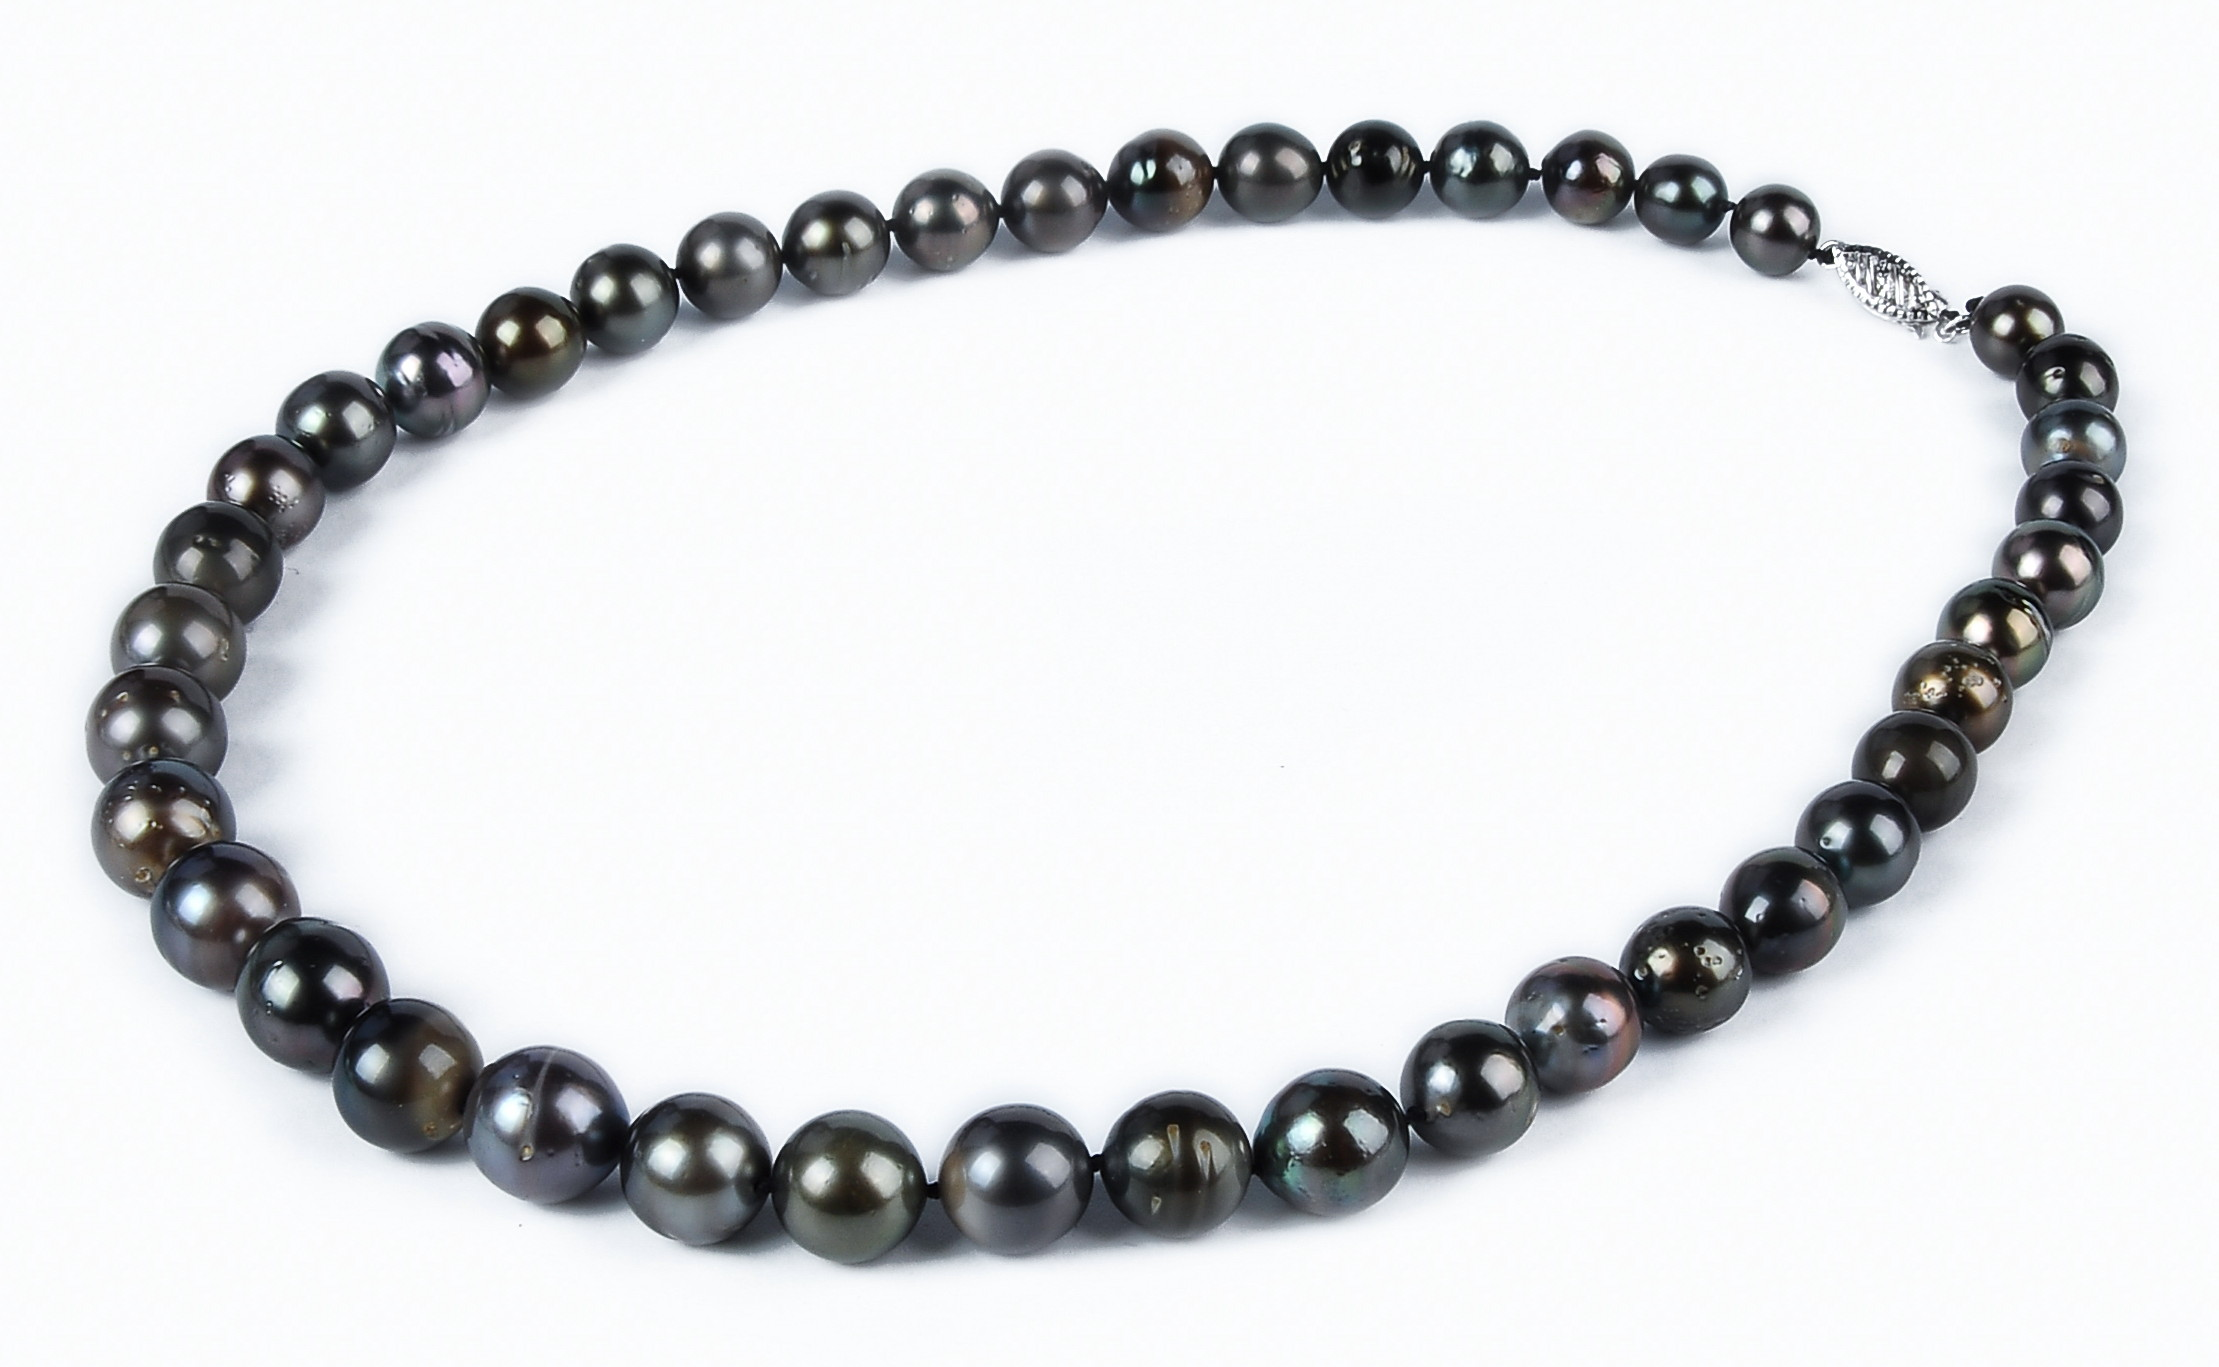 10.8 mm AA- Black Tahitian Pearl Necklace -nk213